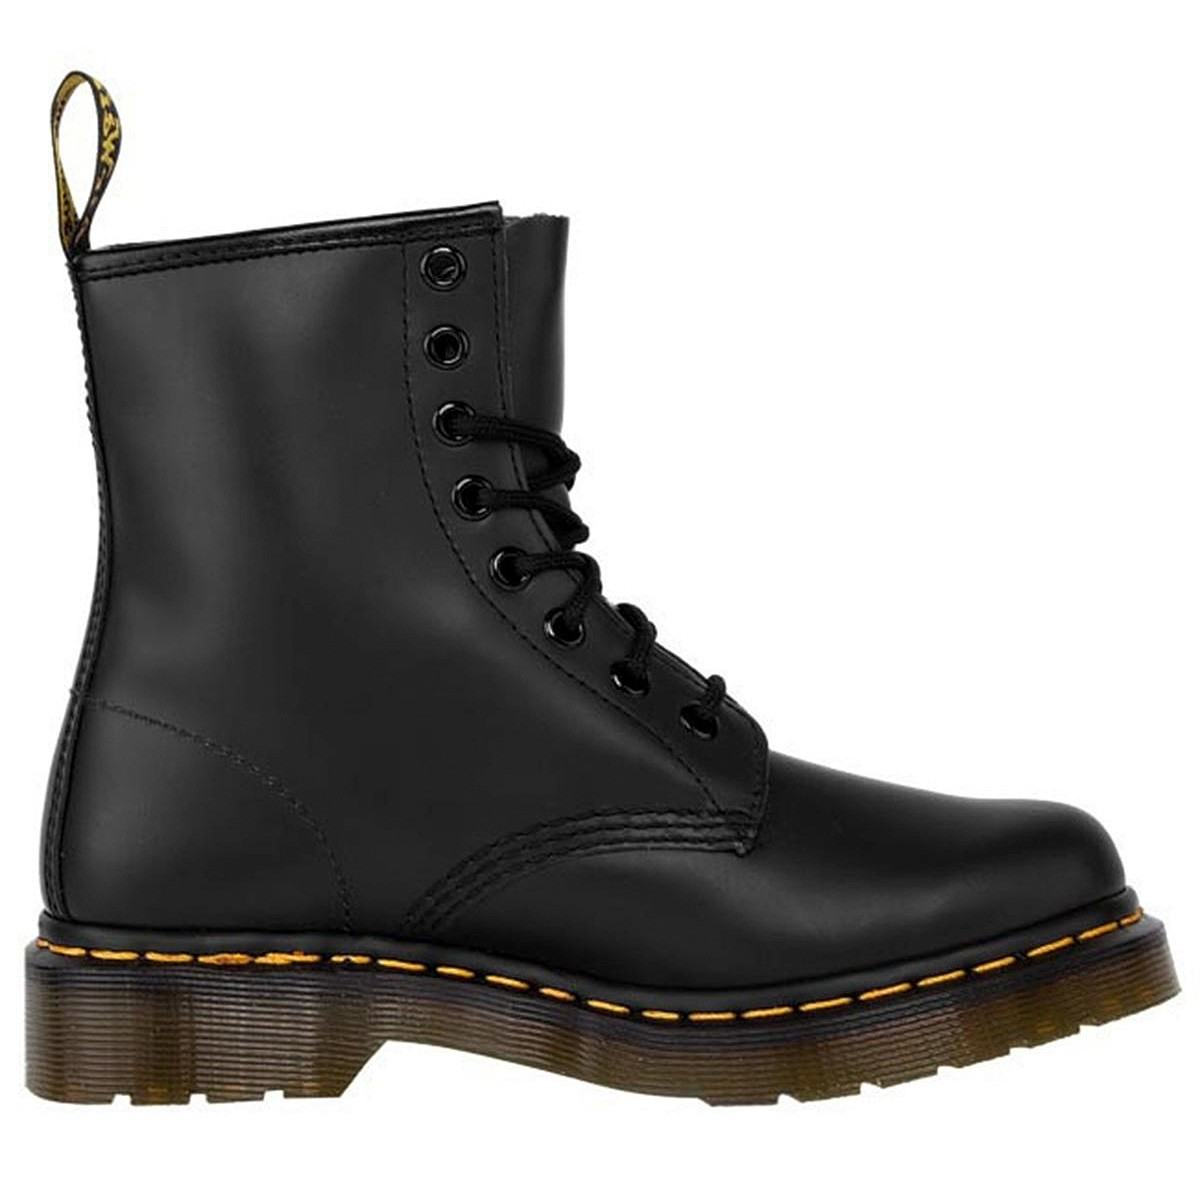 9e478f0d0b0ae Boots Dr Martens 1460 Smooth Woman - Fashion shoes